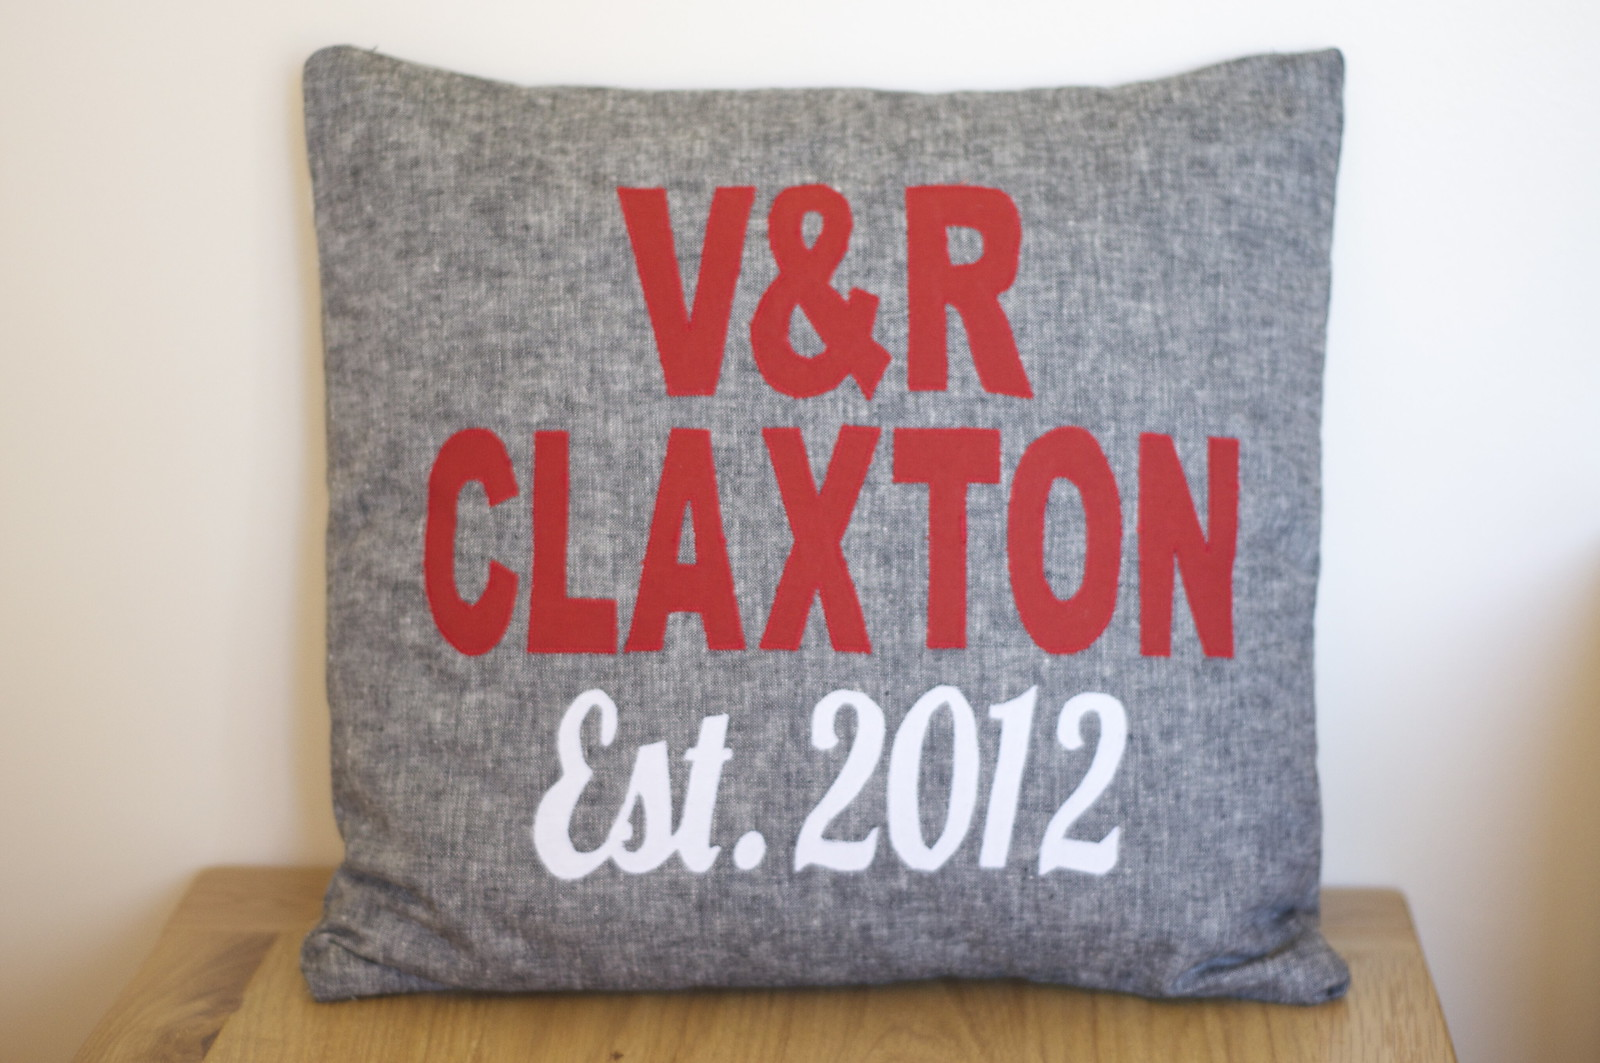 Another wedding cushion...